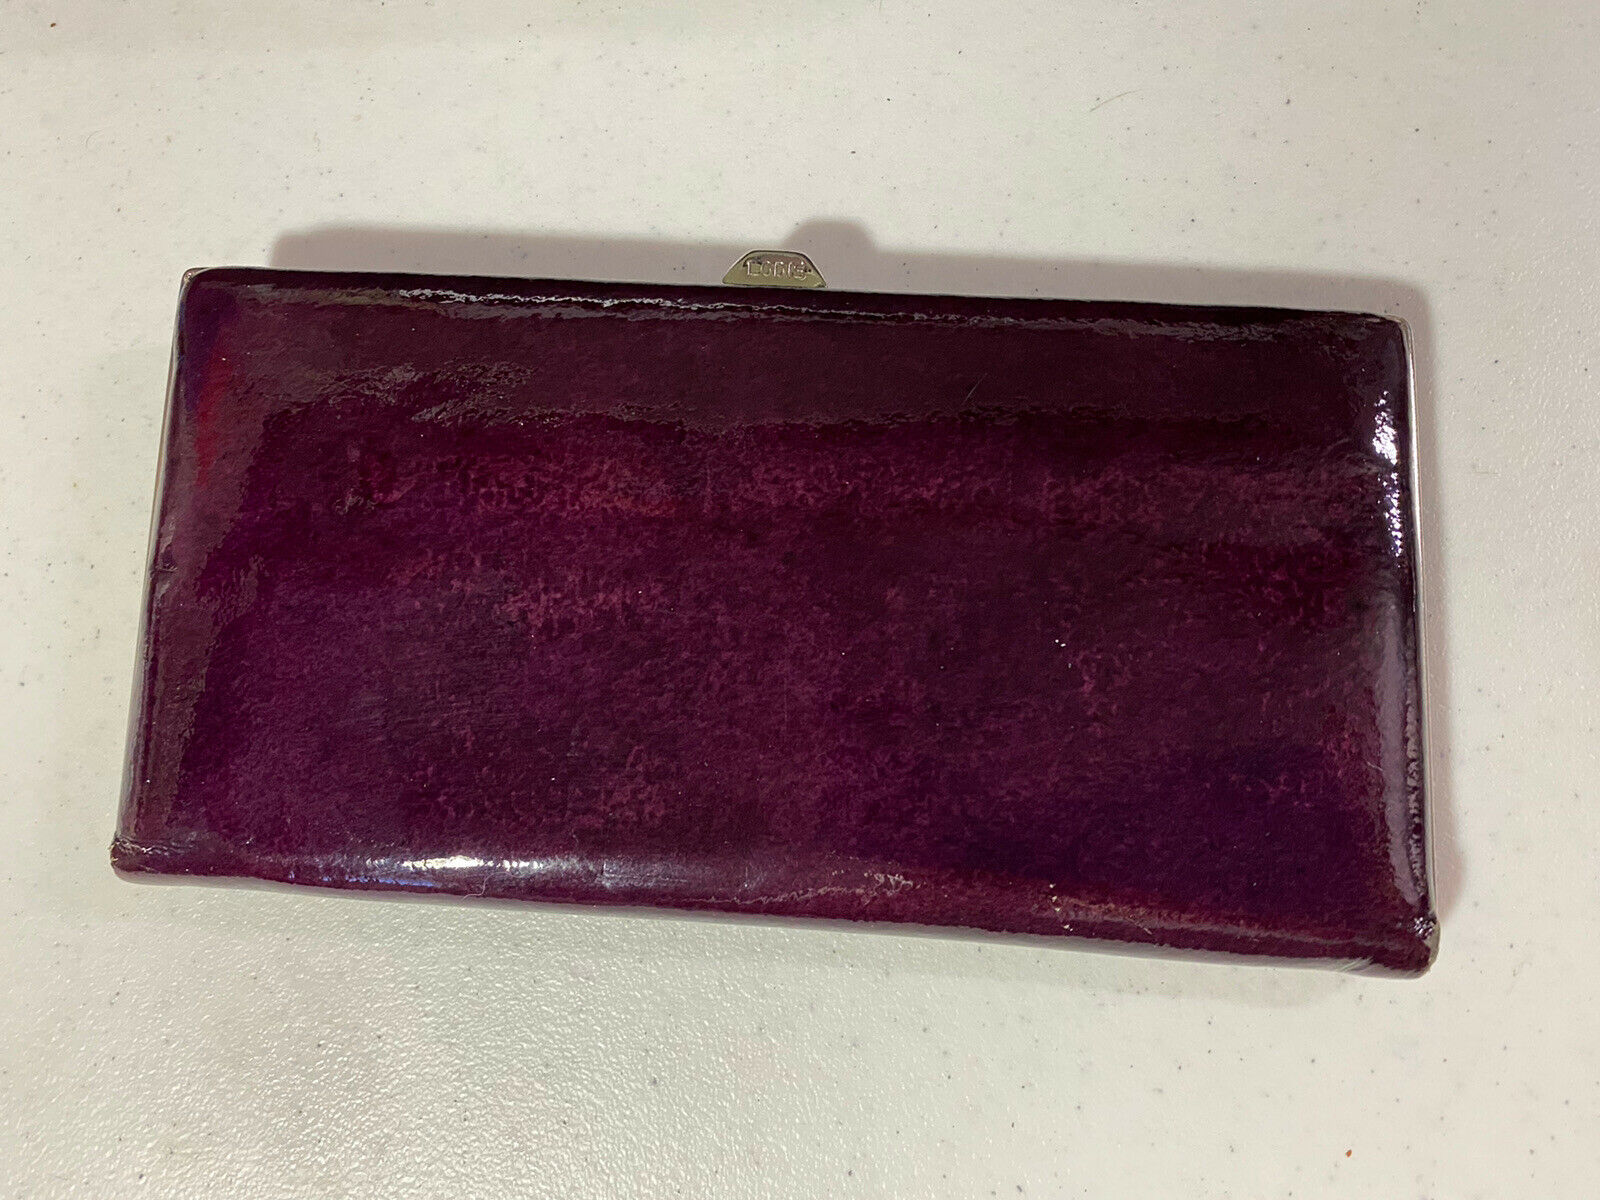 LODIS Purple Iridescent Patent Leather Framed Clutch Wallet